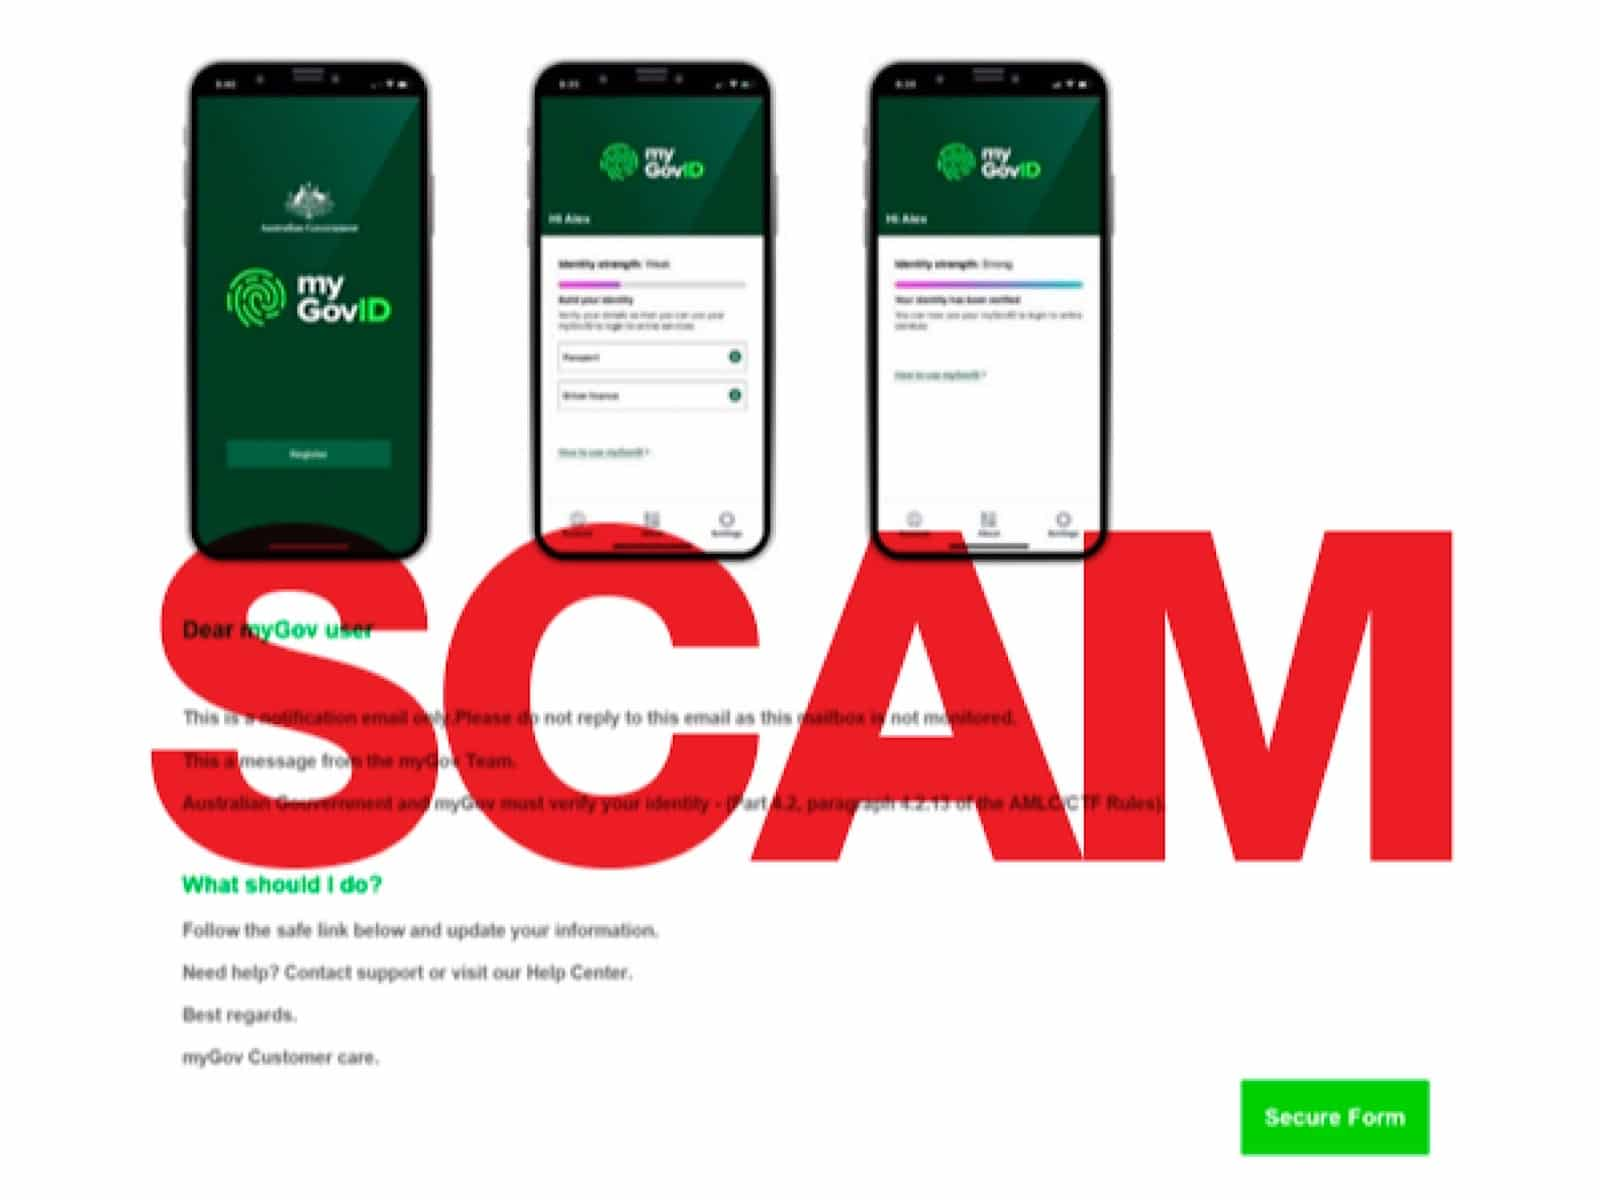 An image of what the myGovID scam looks like.